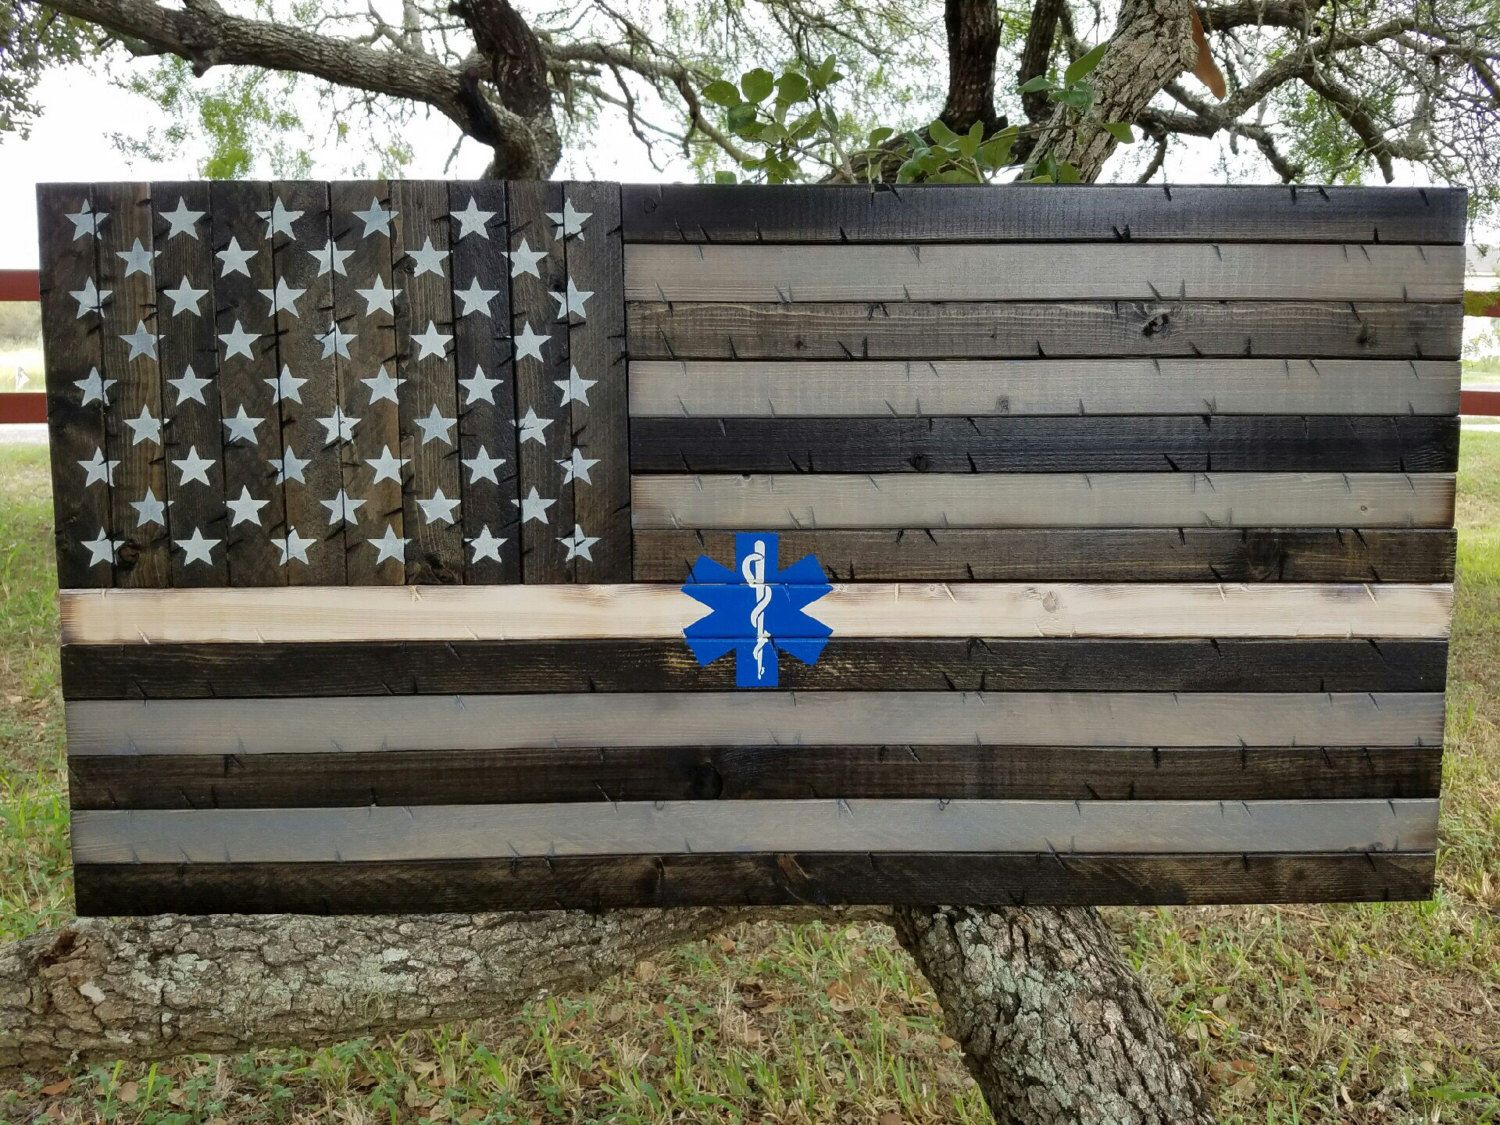 White Line Wood Wiring Diagrams Circuits Proteus Isis Simulation Files 555examplecircuitsrar Thin Ems Wooden Rustic American Flag With The Star Of Rh Pinterest Com Woodcut Method